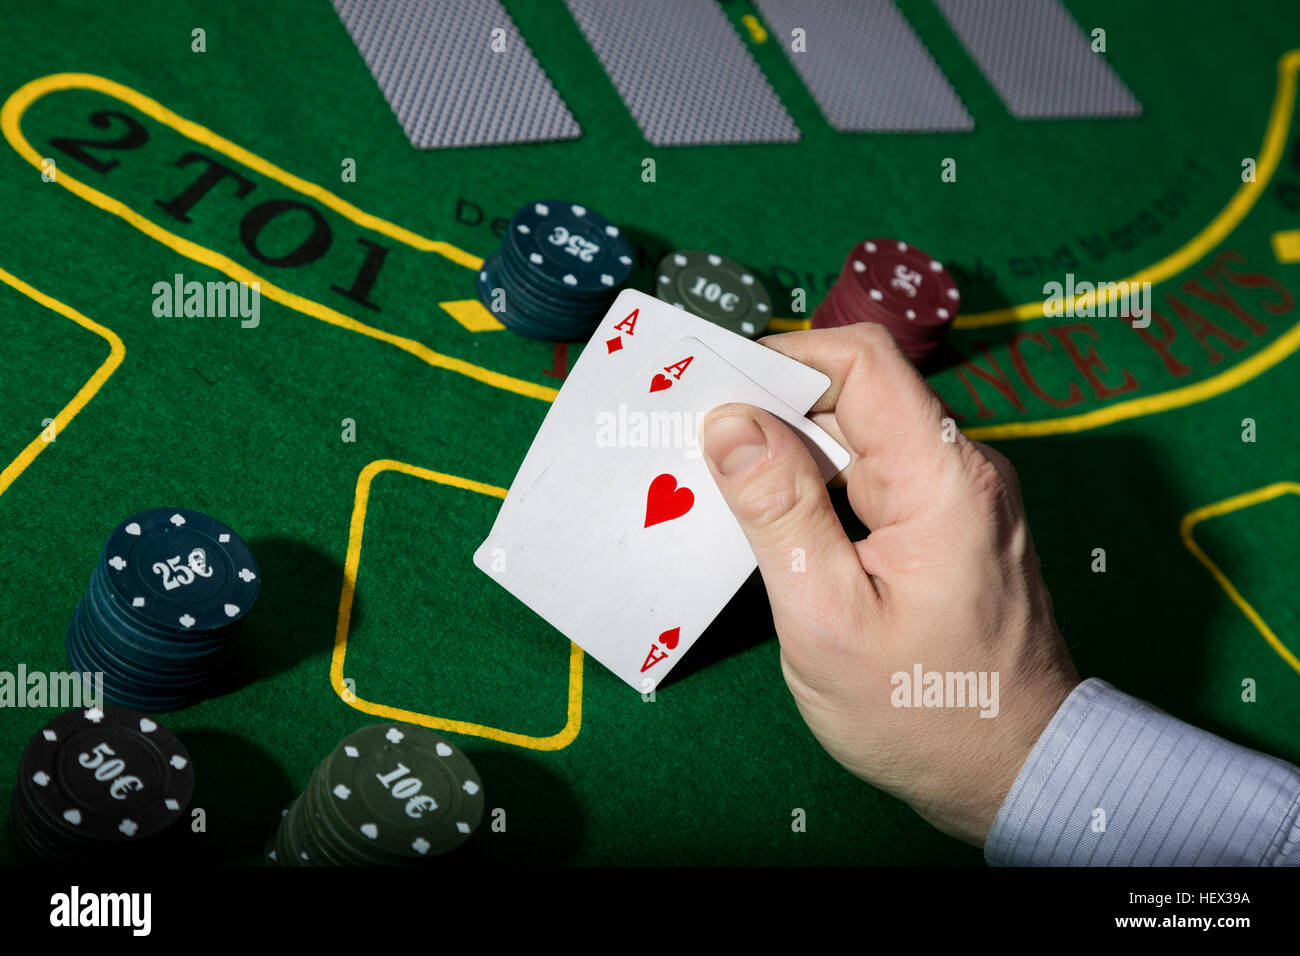 Poker table background - Stock Photo Poker Playing Card On A Green Table Background Man Holding Two Aces